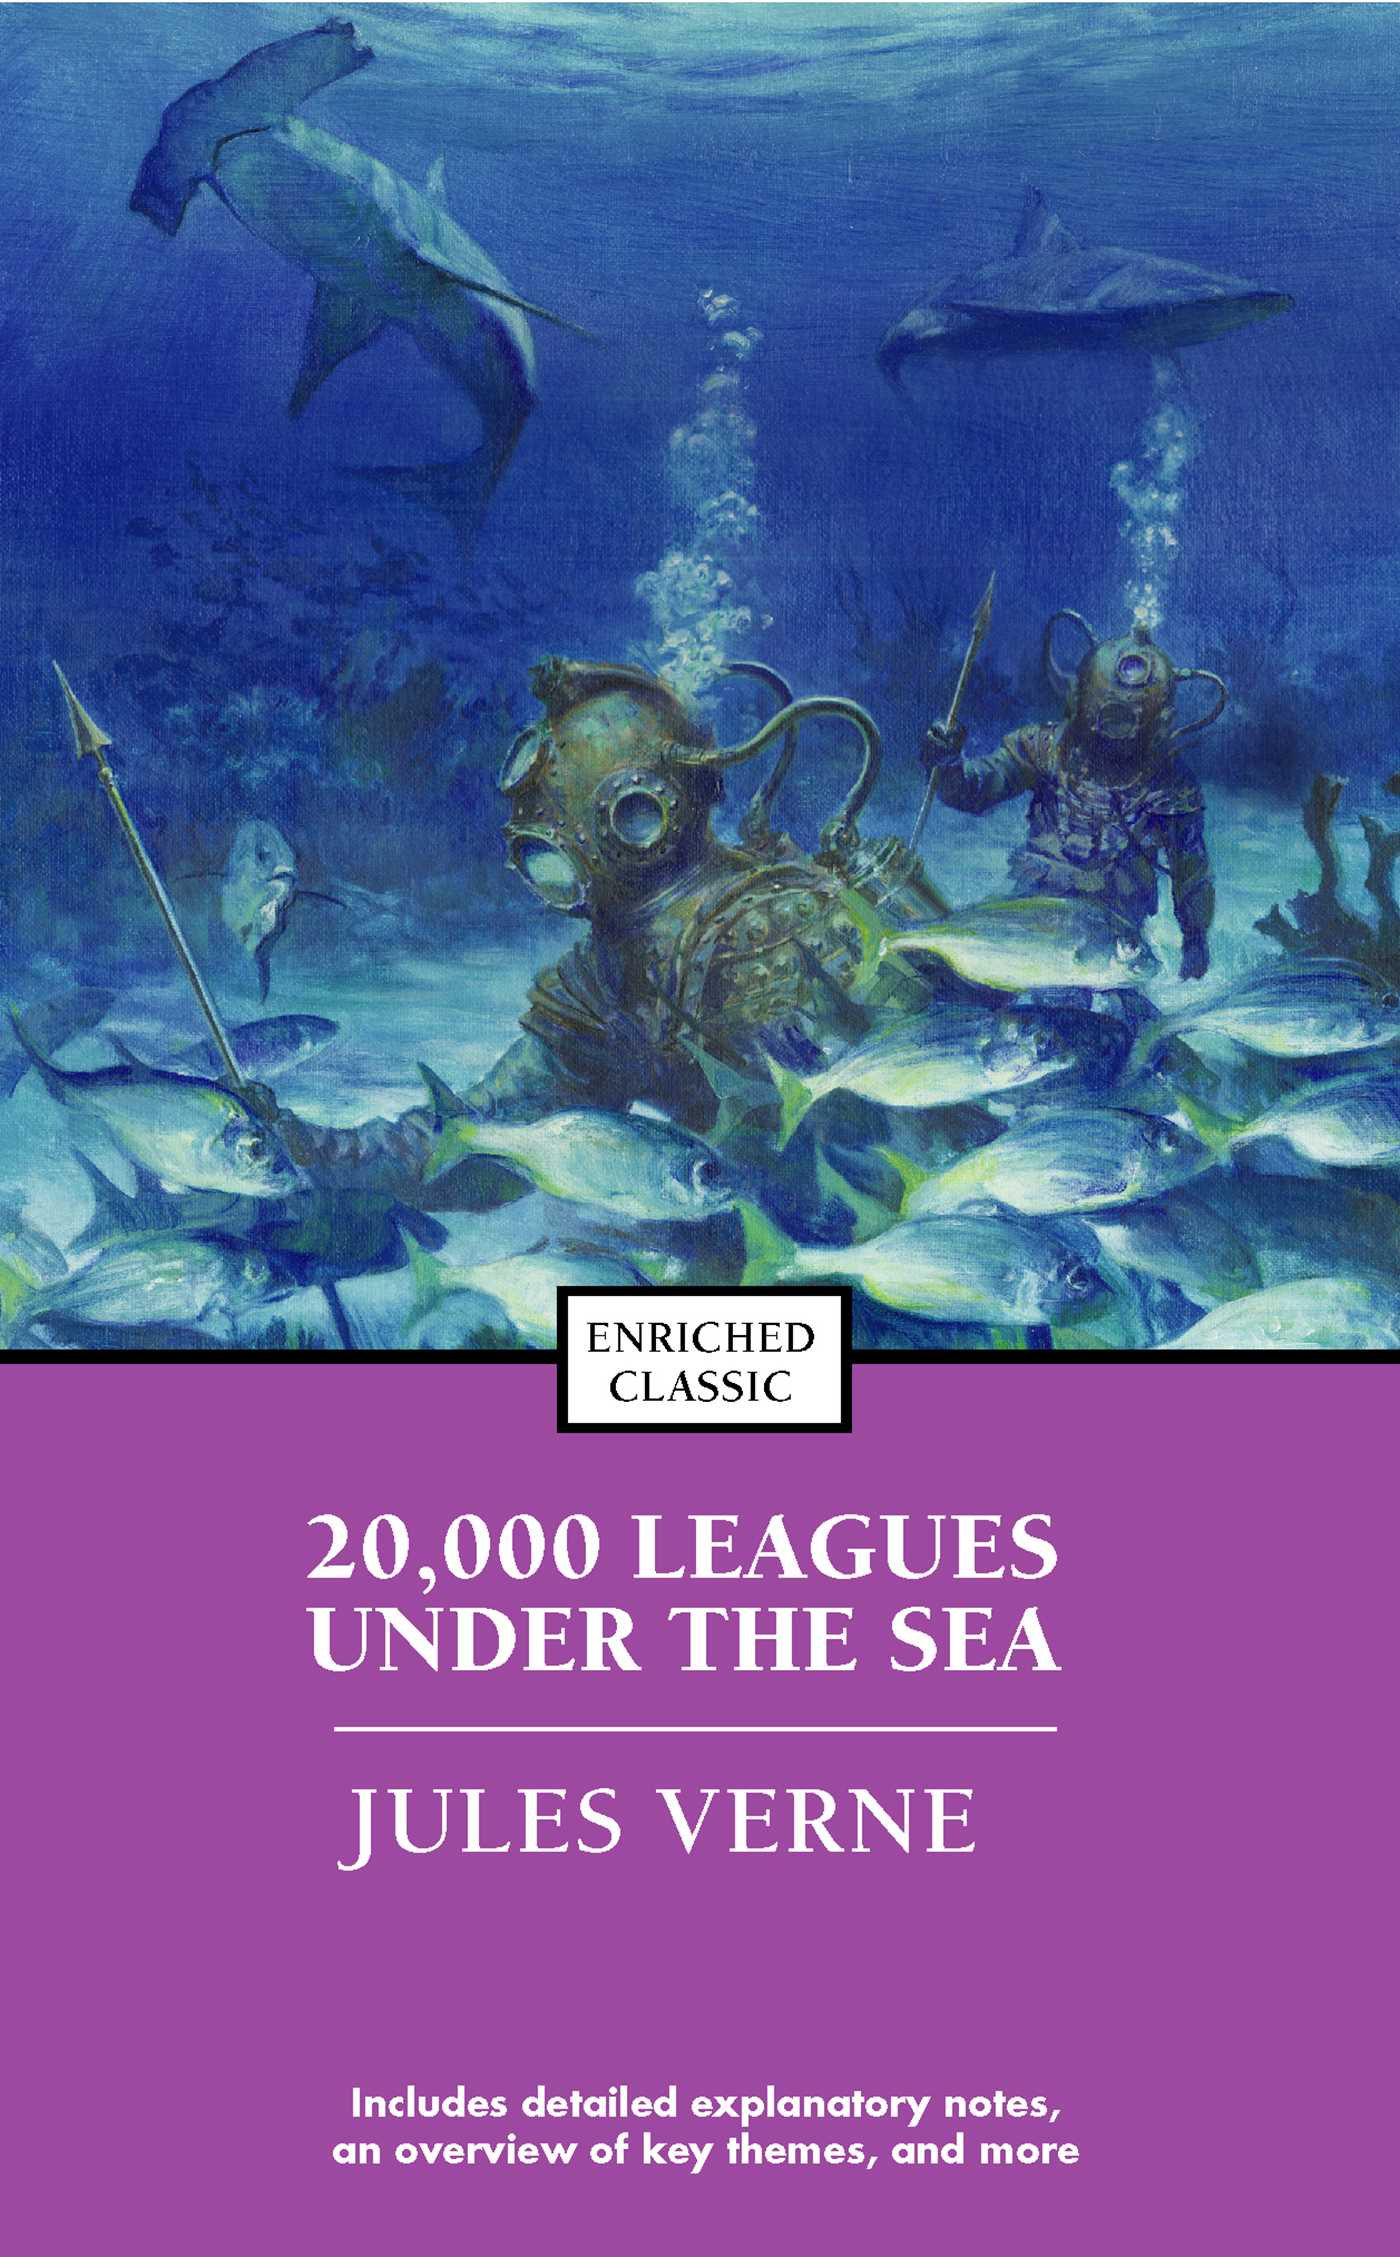 an analysis of 20000 leagues under the sea by jules verne Below is an essay on 20000 leagues under the sea from anti essays, your source for research papers, essays, and term paper examples step inside an amazing submarine and explore the underwater world in 20,000 leagues under the sea by jules verne.